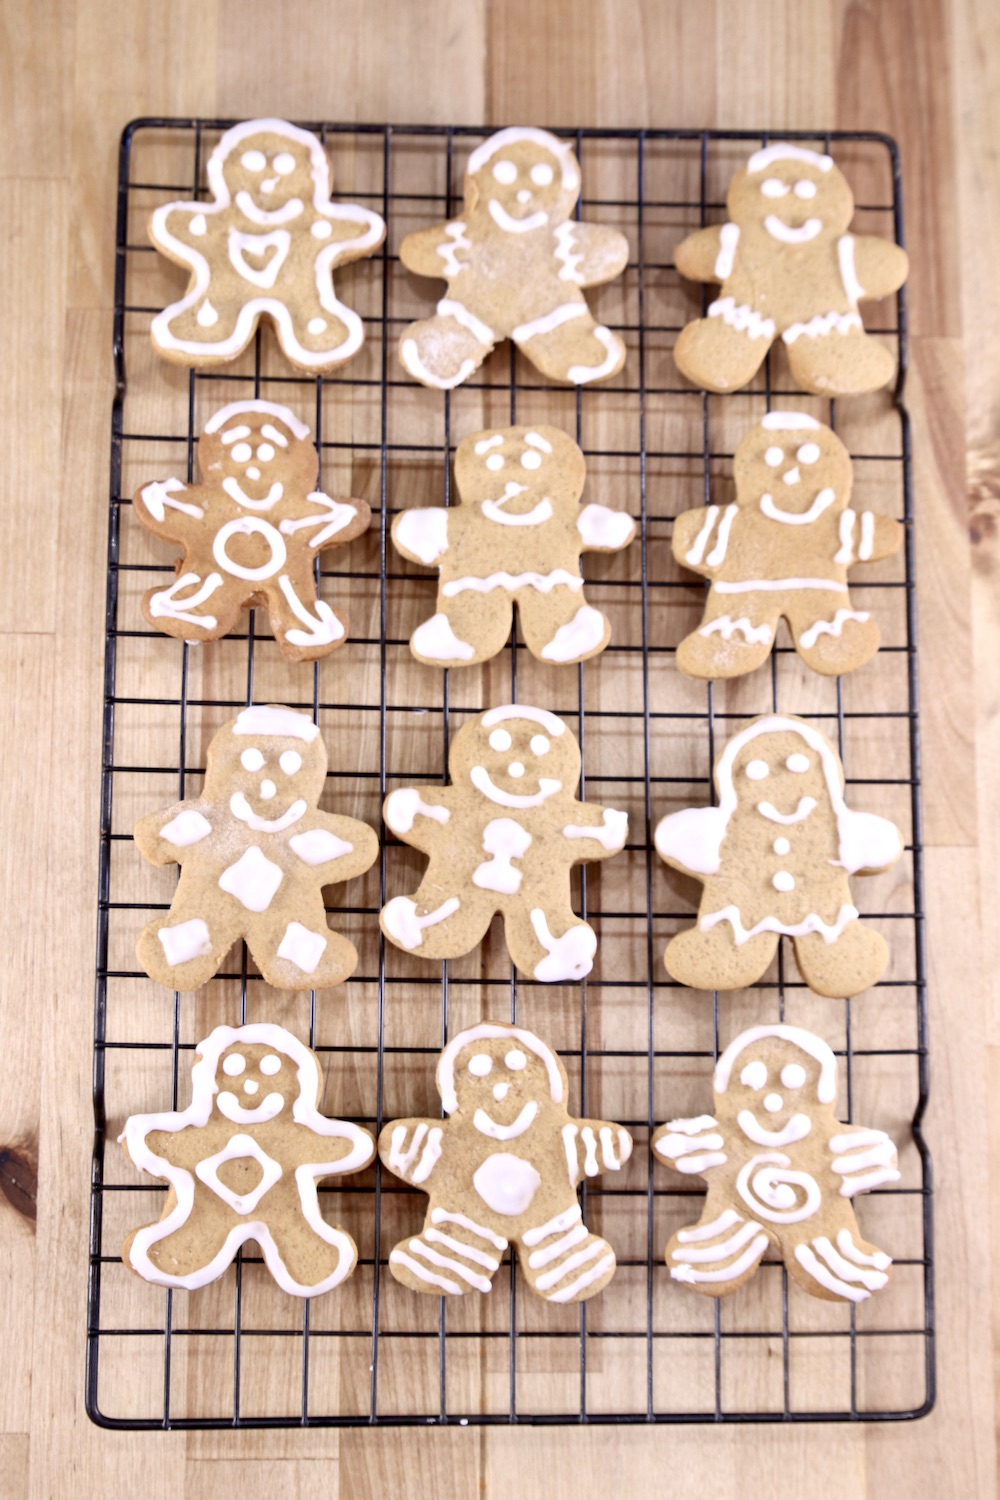 Decorated gingerbread men cookies on a wire rack